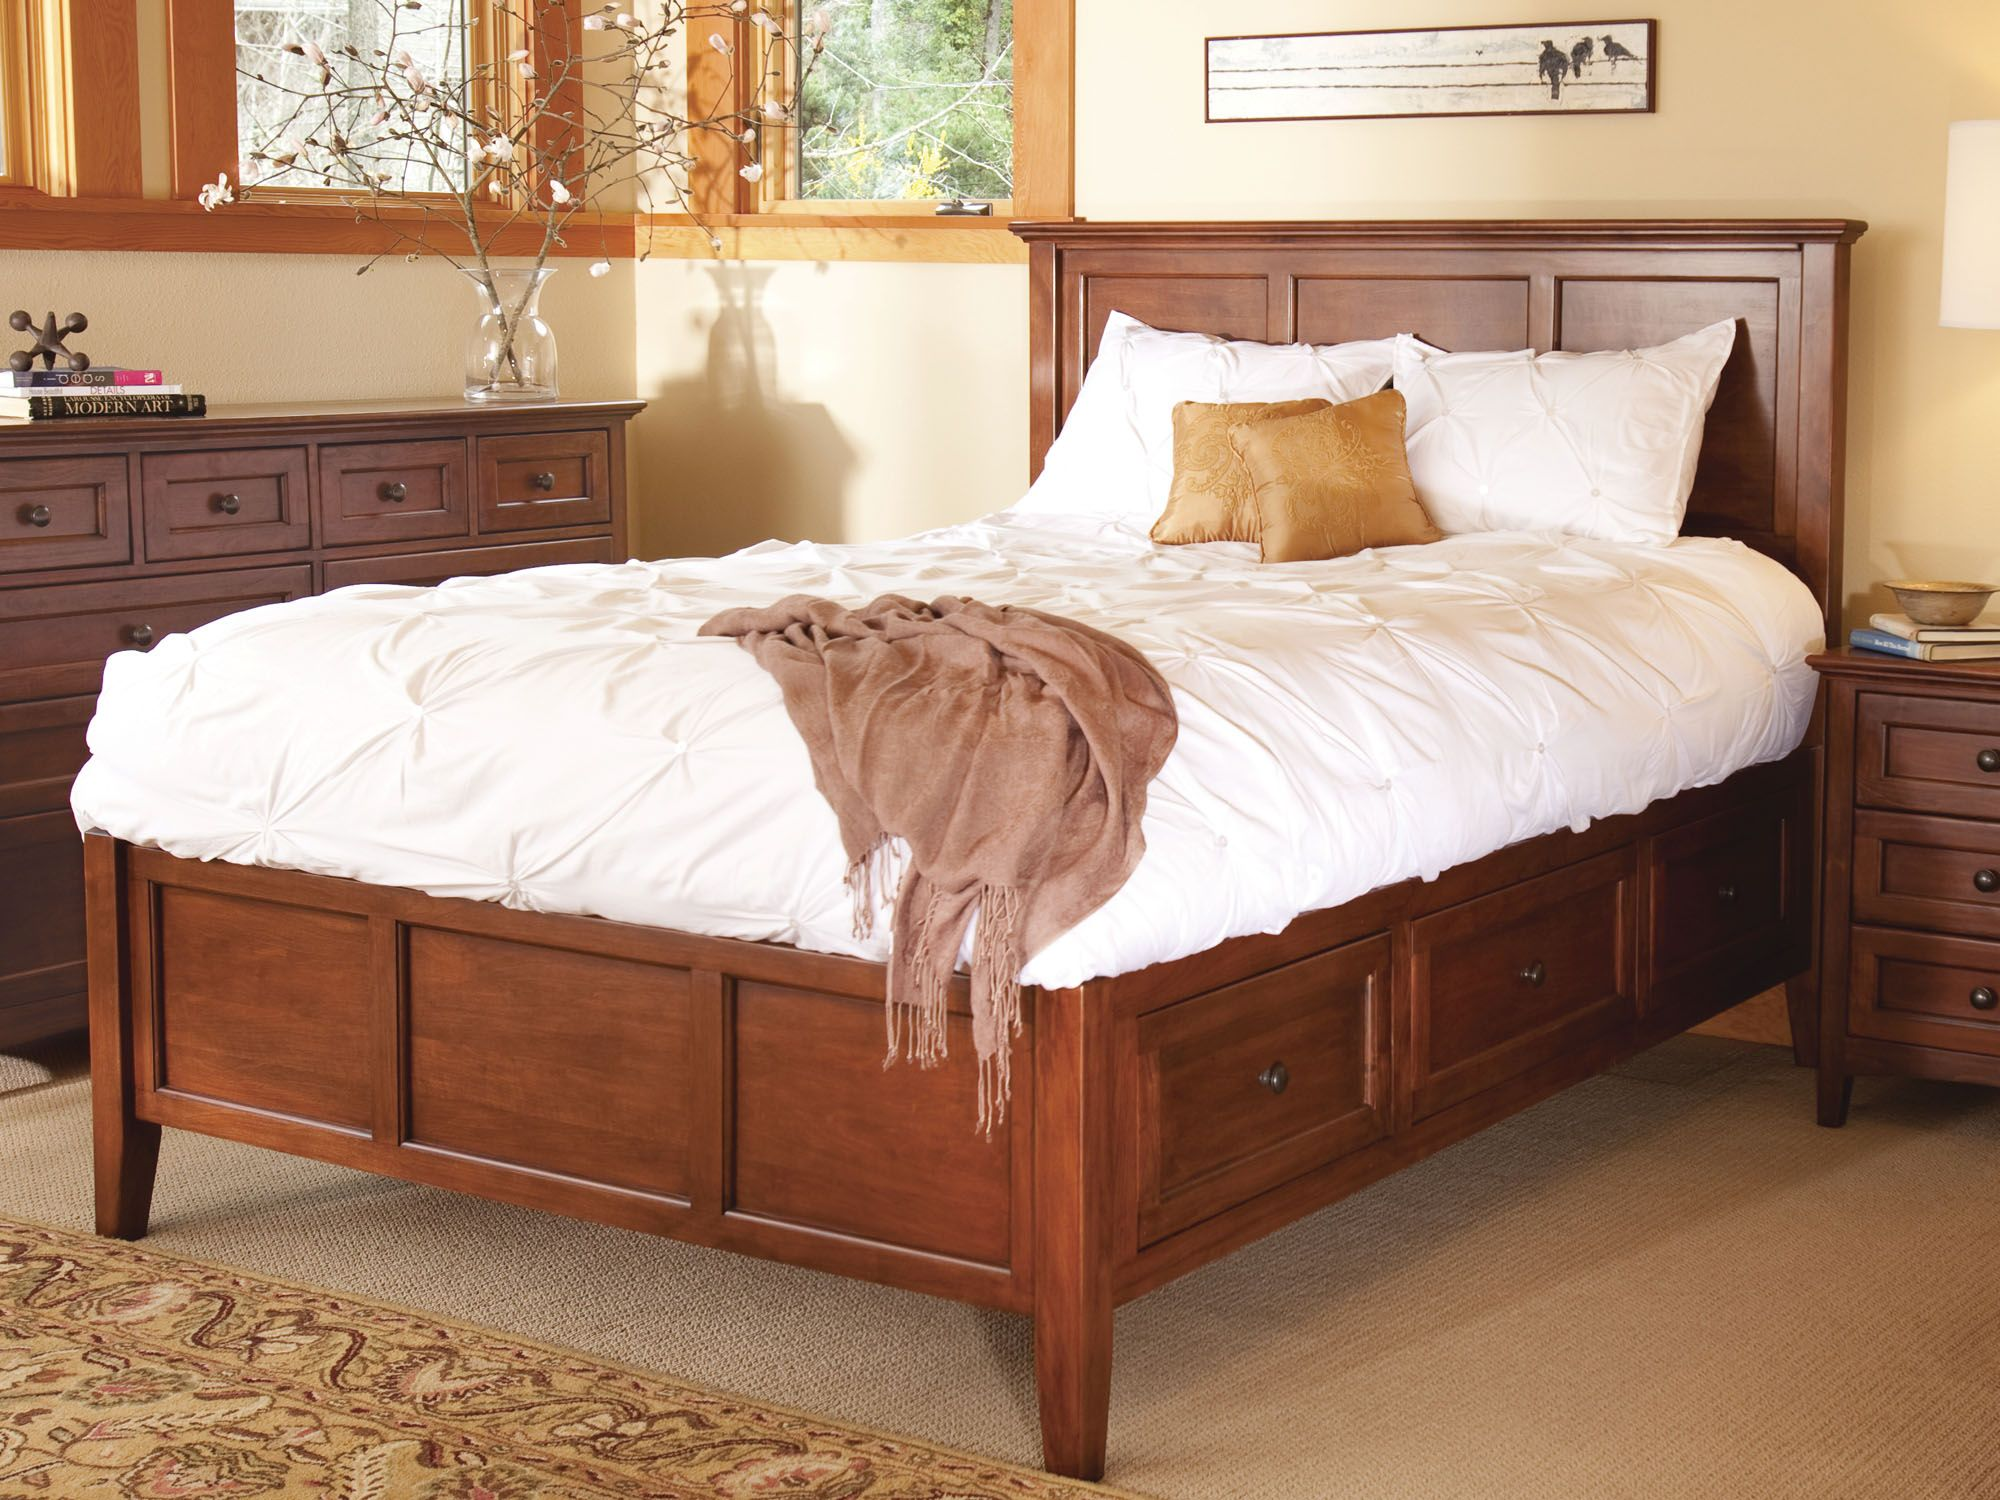 Finished Furniture Whittier Wood Furniture Best Wood For Furniture Furniture Real Wood Furniture